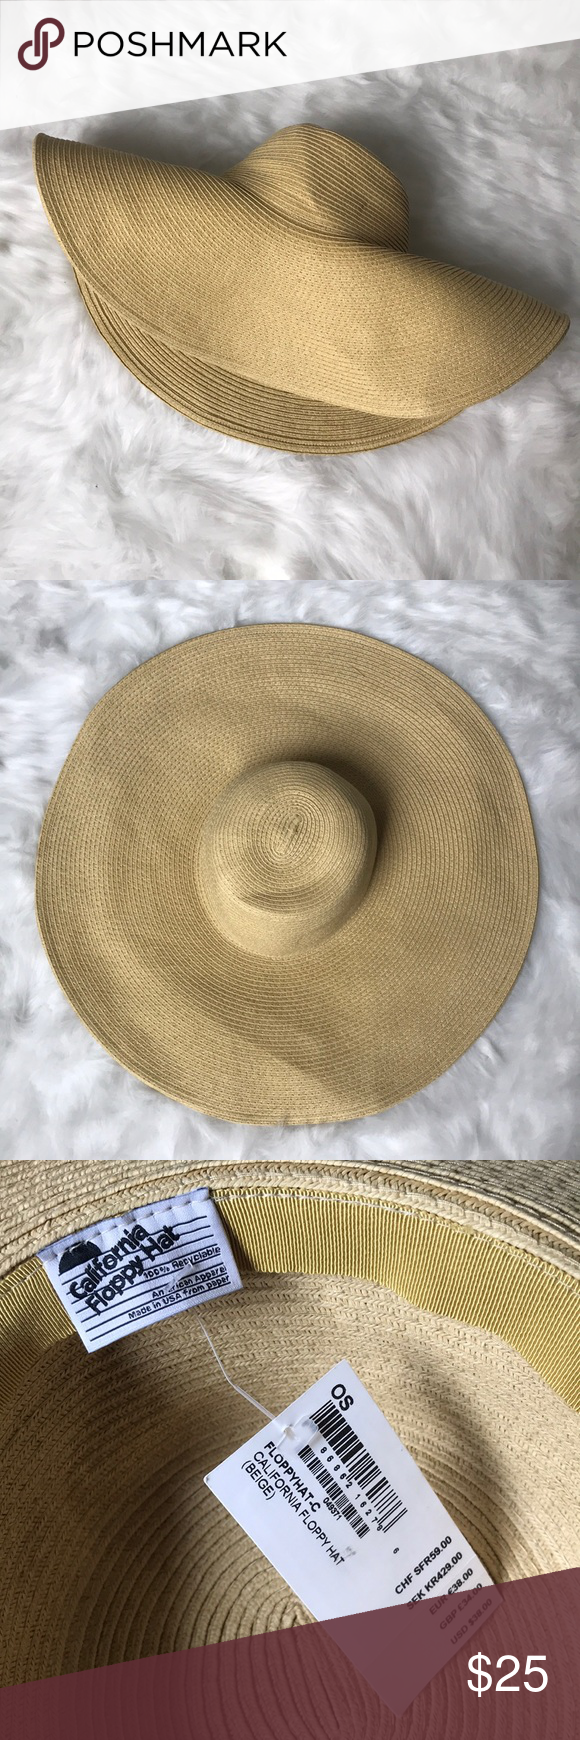 83ef1e84b97 American Apparel Floppy Hat American Apparel California Floppy Hat! NWT!  One side to other